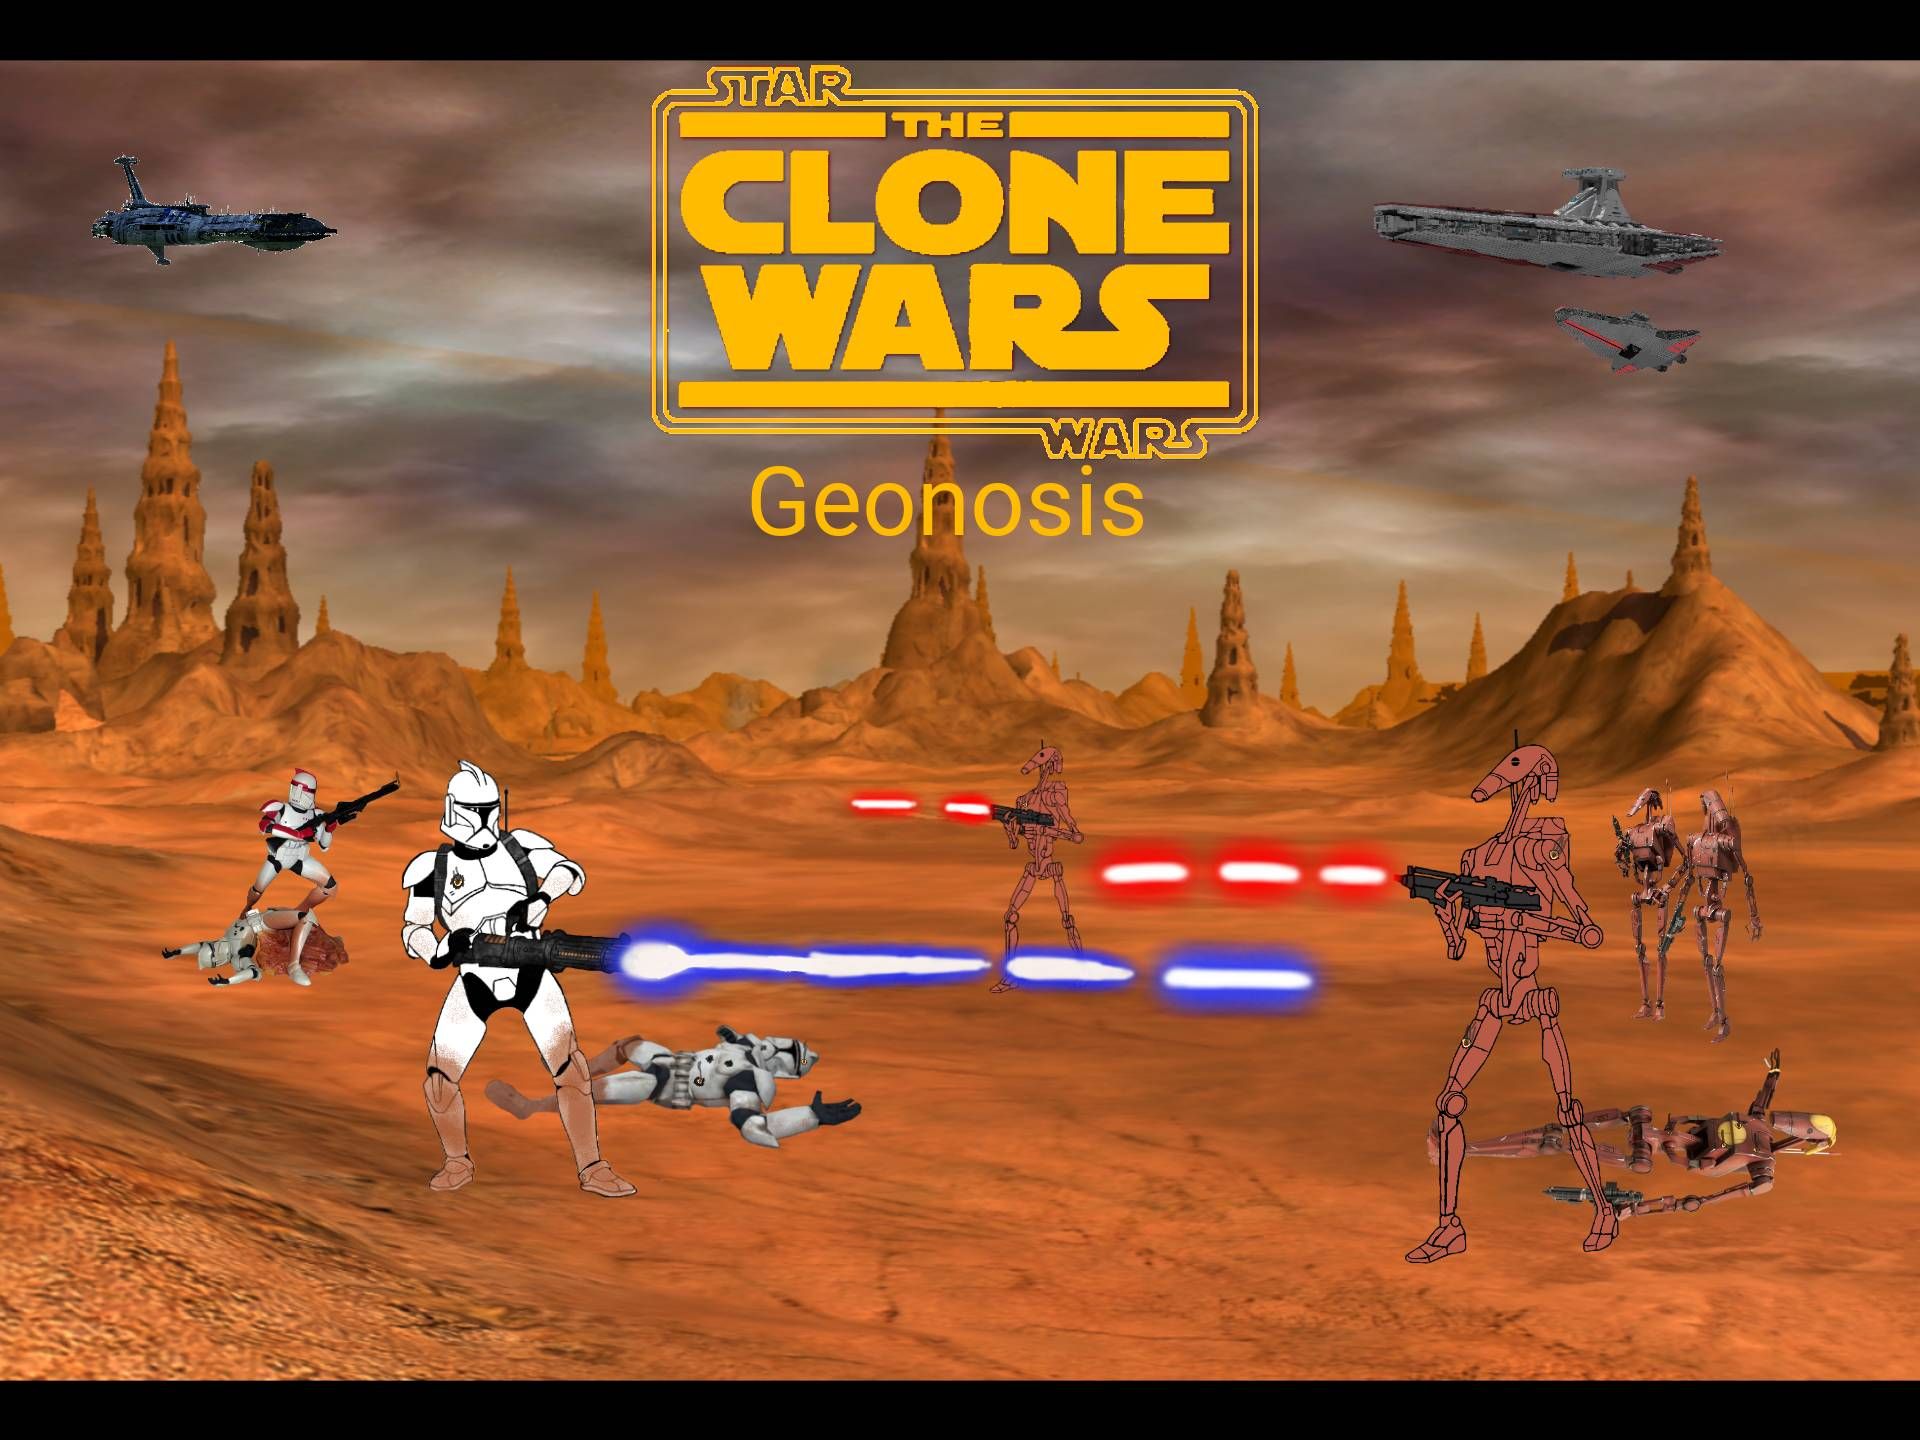 Star Wars The Clone Wars The Battle Of Geonosis By Panpanman43 On Deviantart